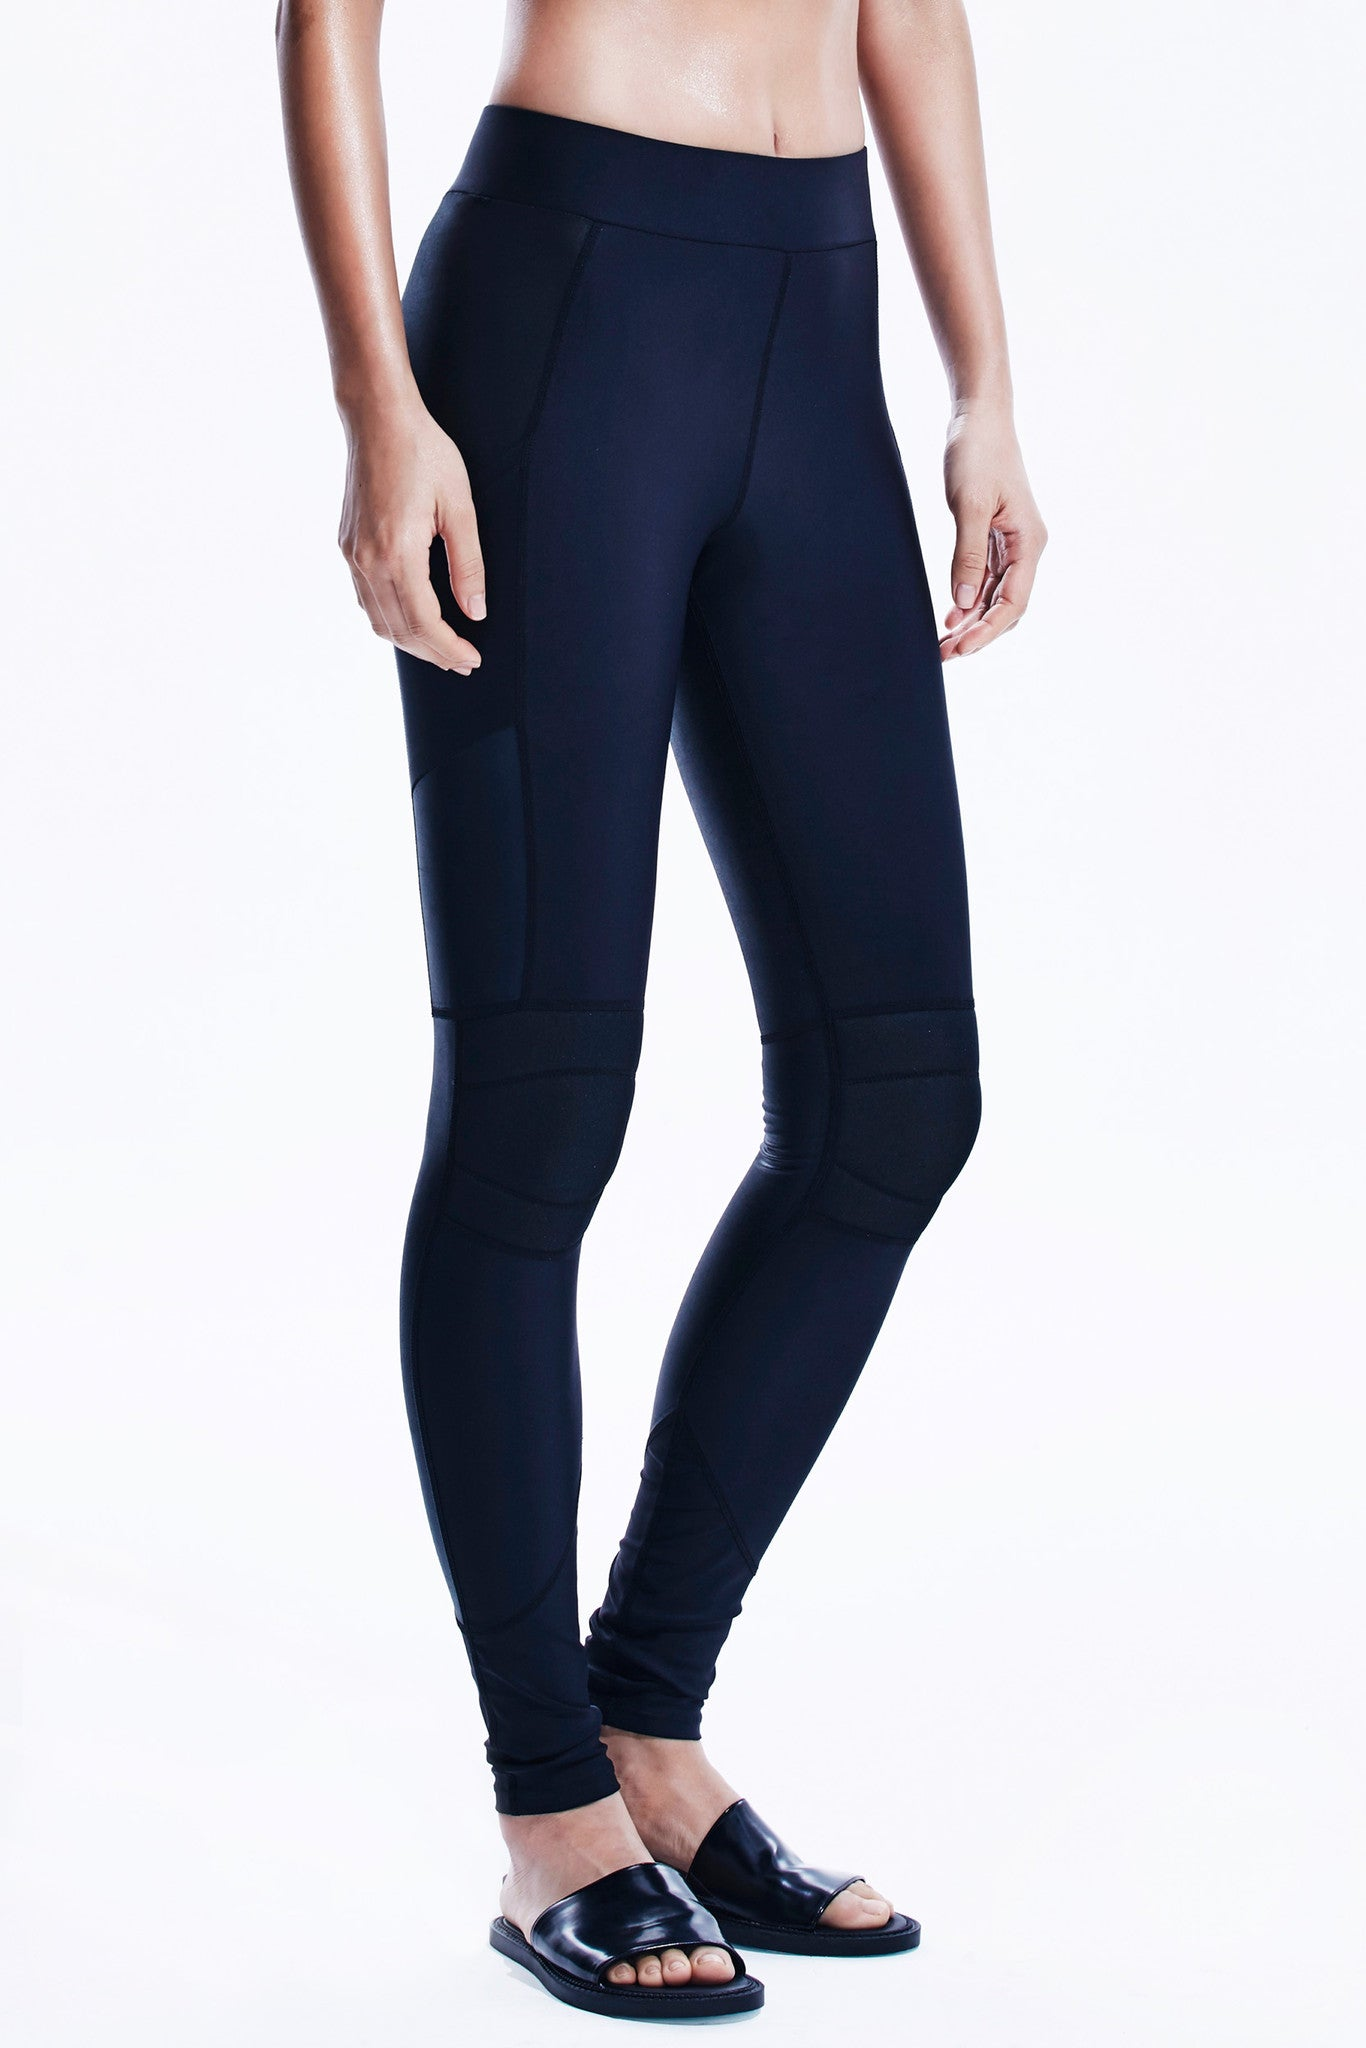 Axis Leggings in Iridescent black with side pockets.